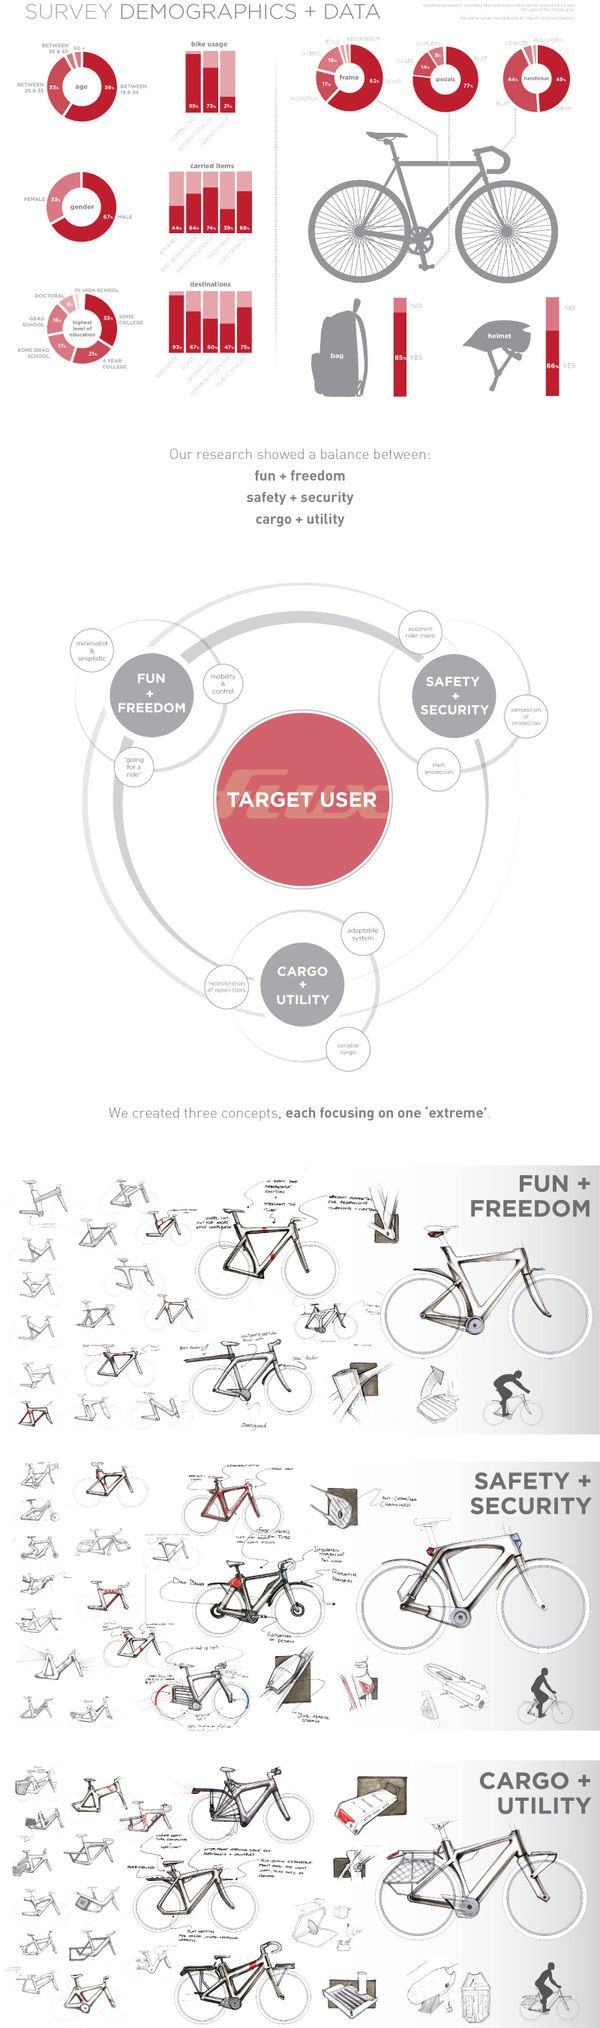 Flux: Commuter Bike by Eddie Licitra, via Behance